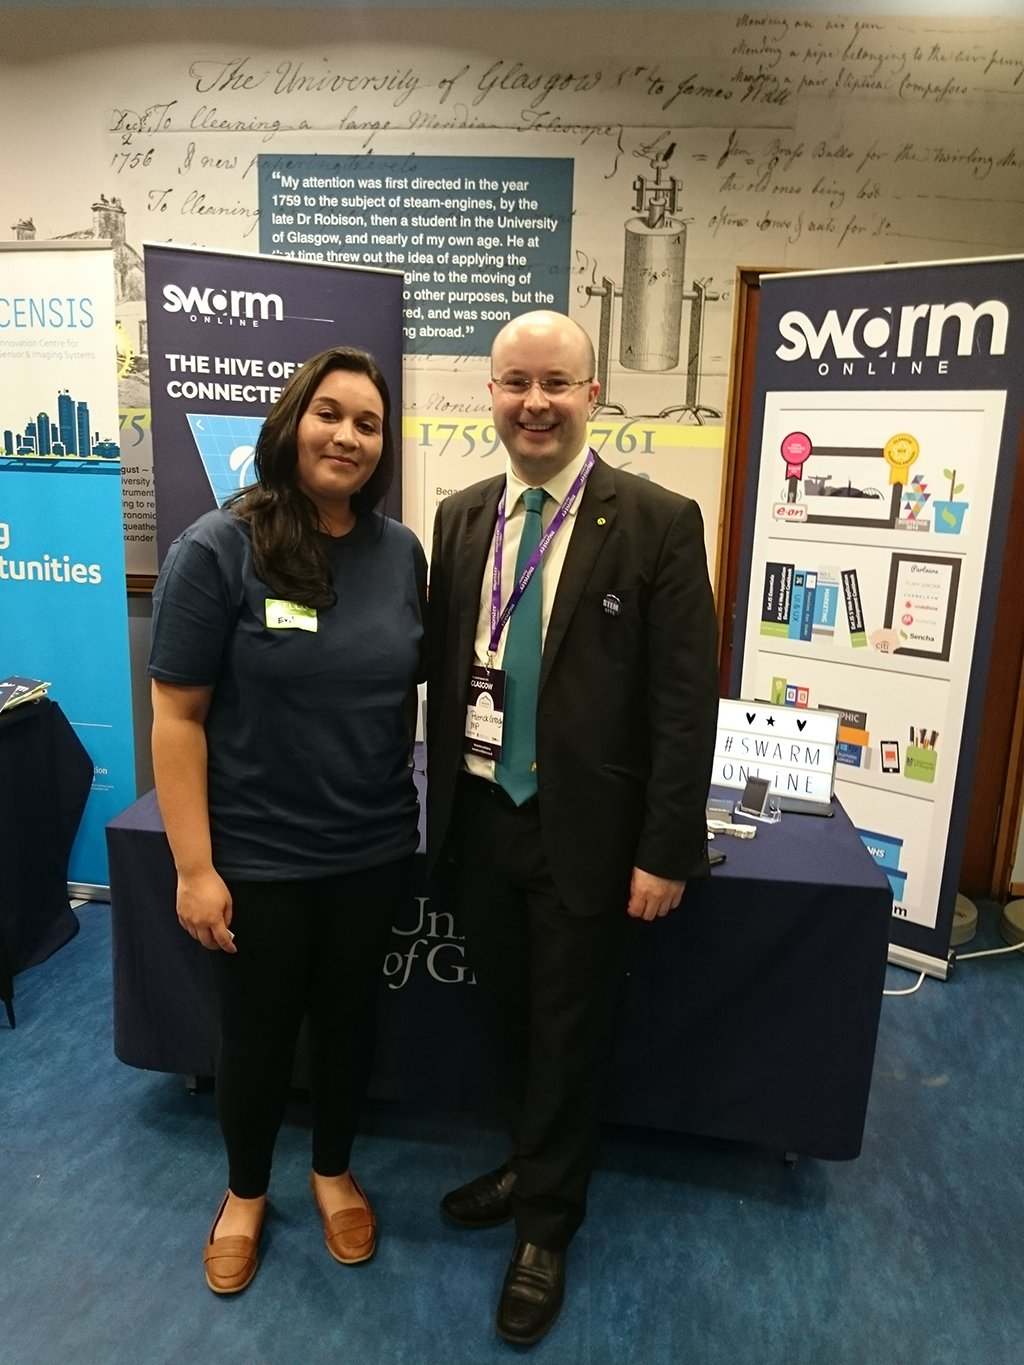 MP for Glasgow North @GradySNP just dropped by the SwarmOnline stand here at #MonsterConfidence! #STEM #careers https://t.co/rI9VOUUsZj